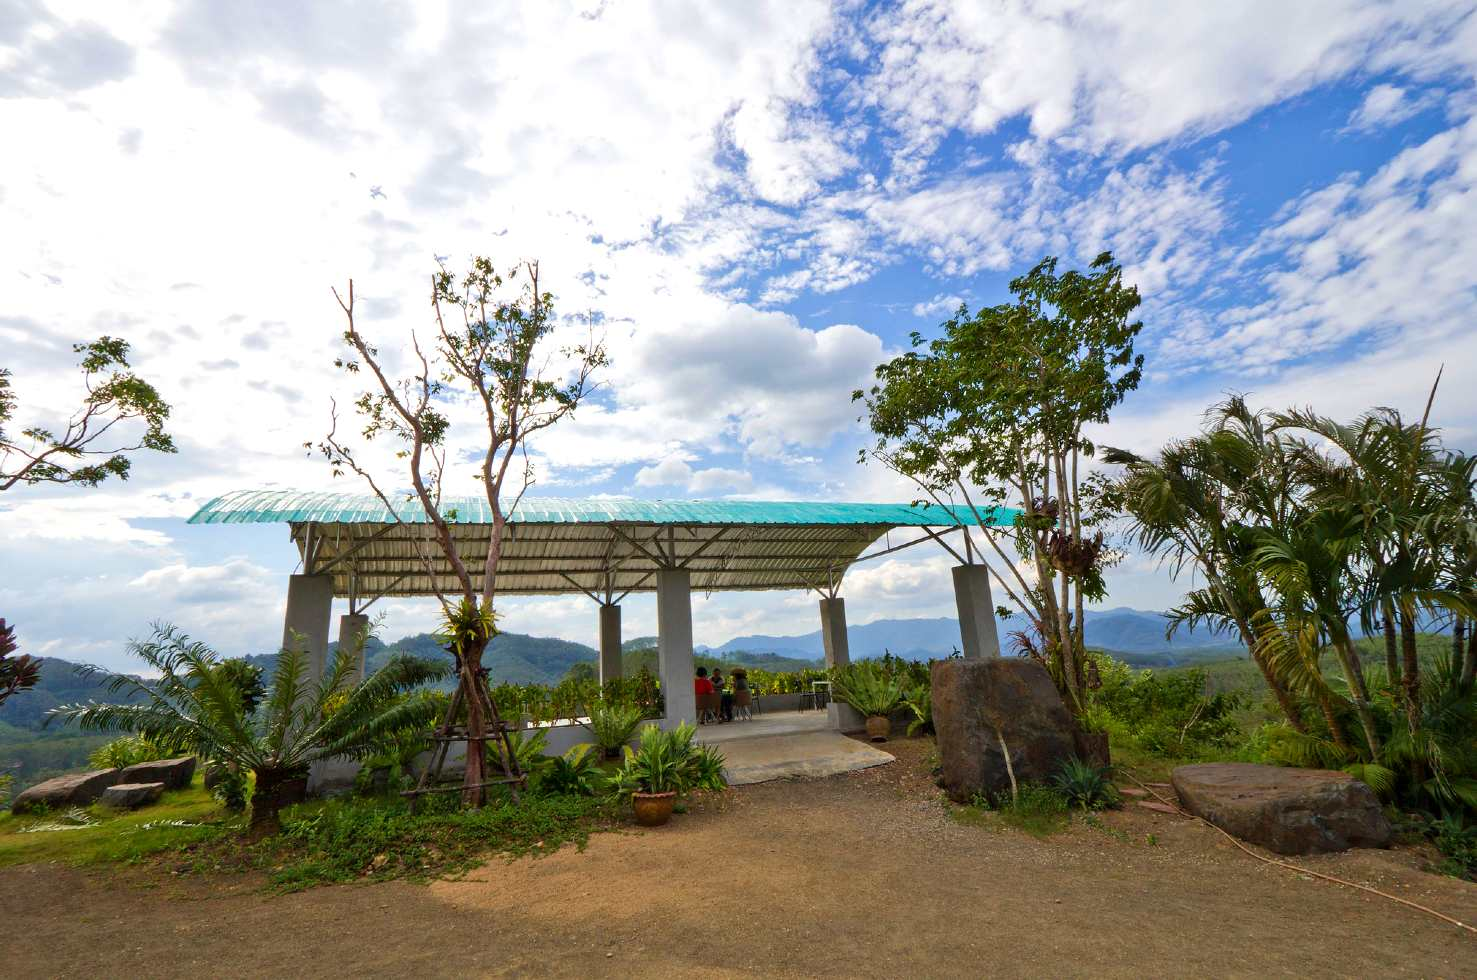 Phang Nga Viewpoint Restaurant in Phang Nga Town